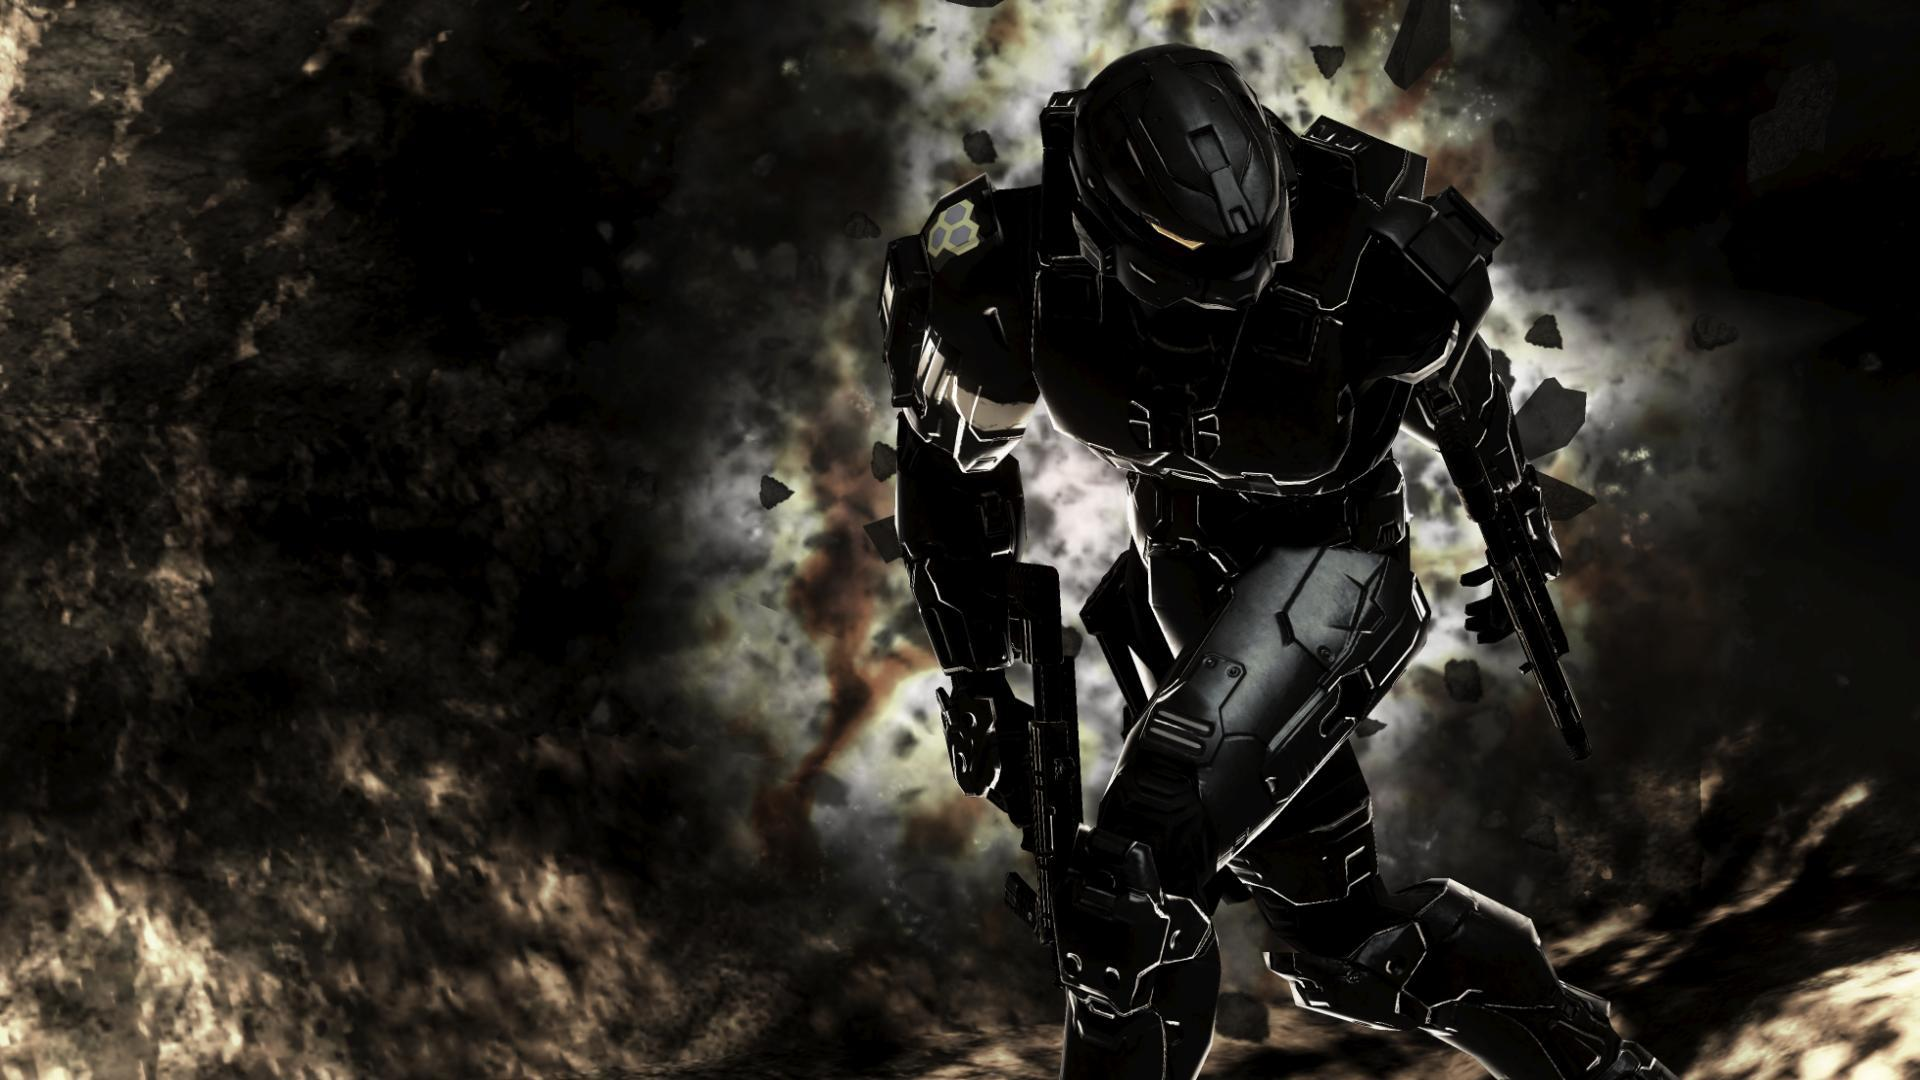 Wallpapers For Cool Halo 3